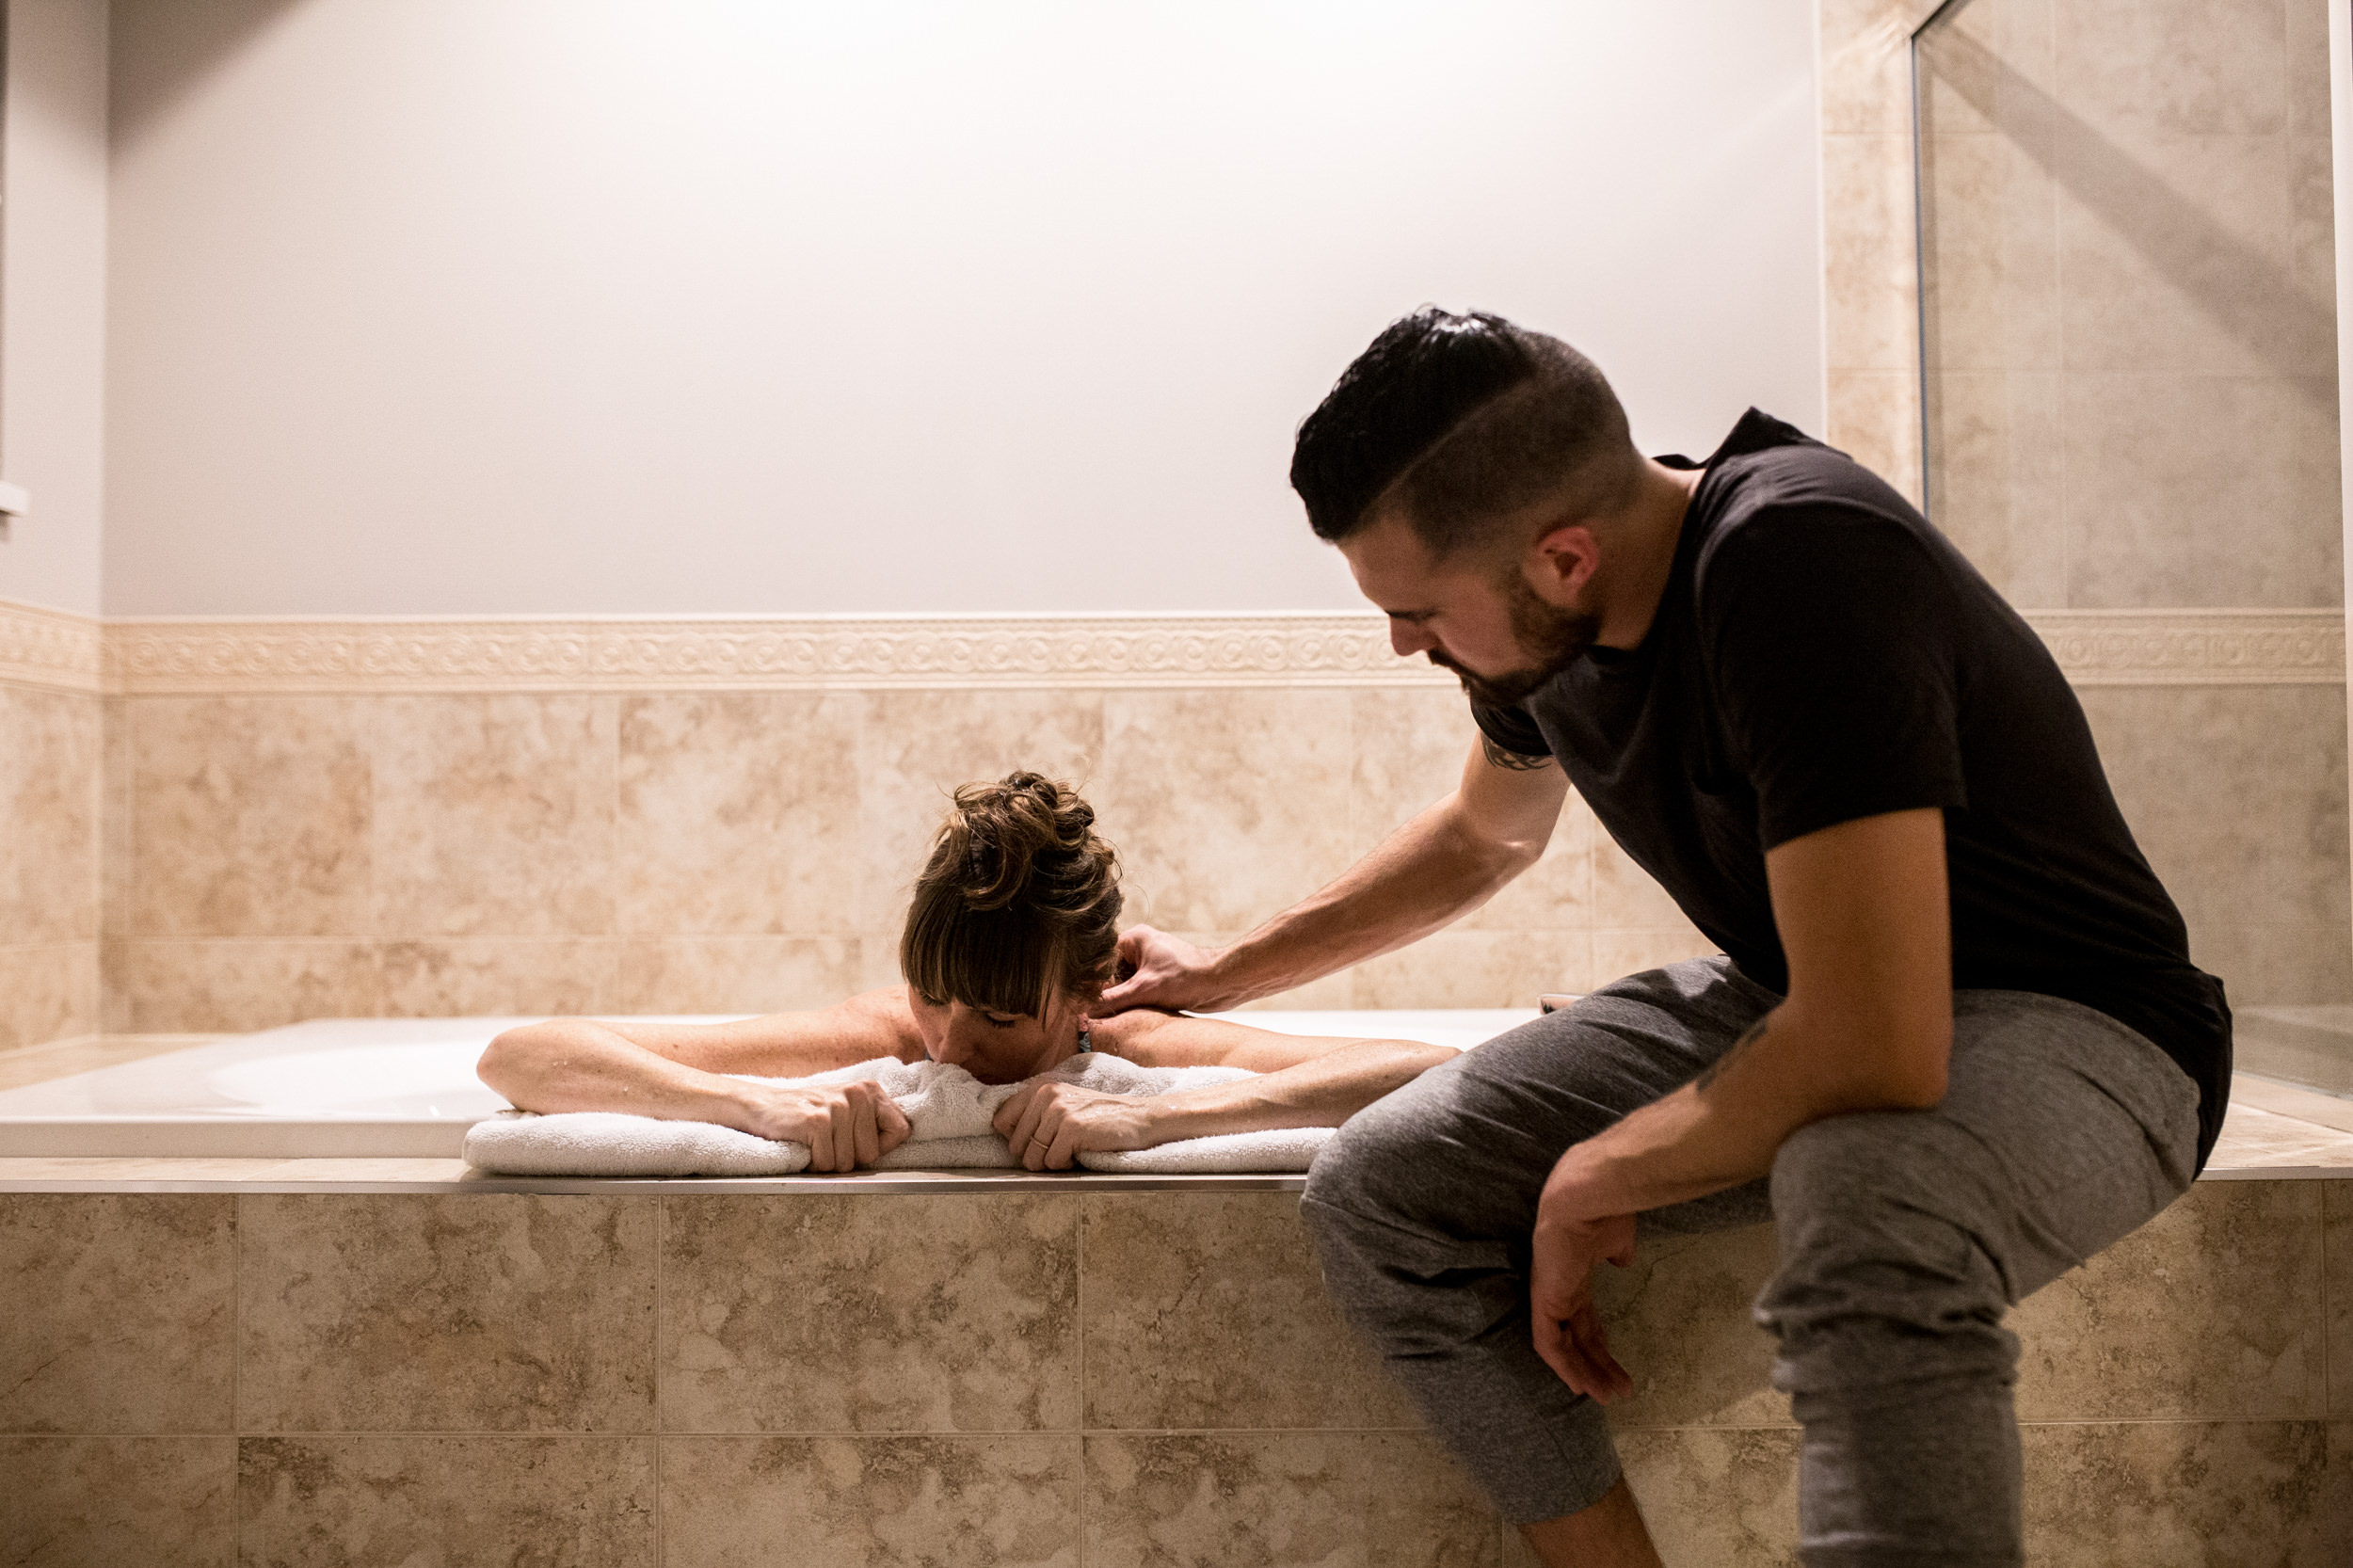 dad supporting mom in the bath tub with his hand on shoulder